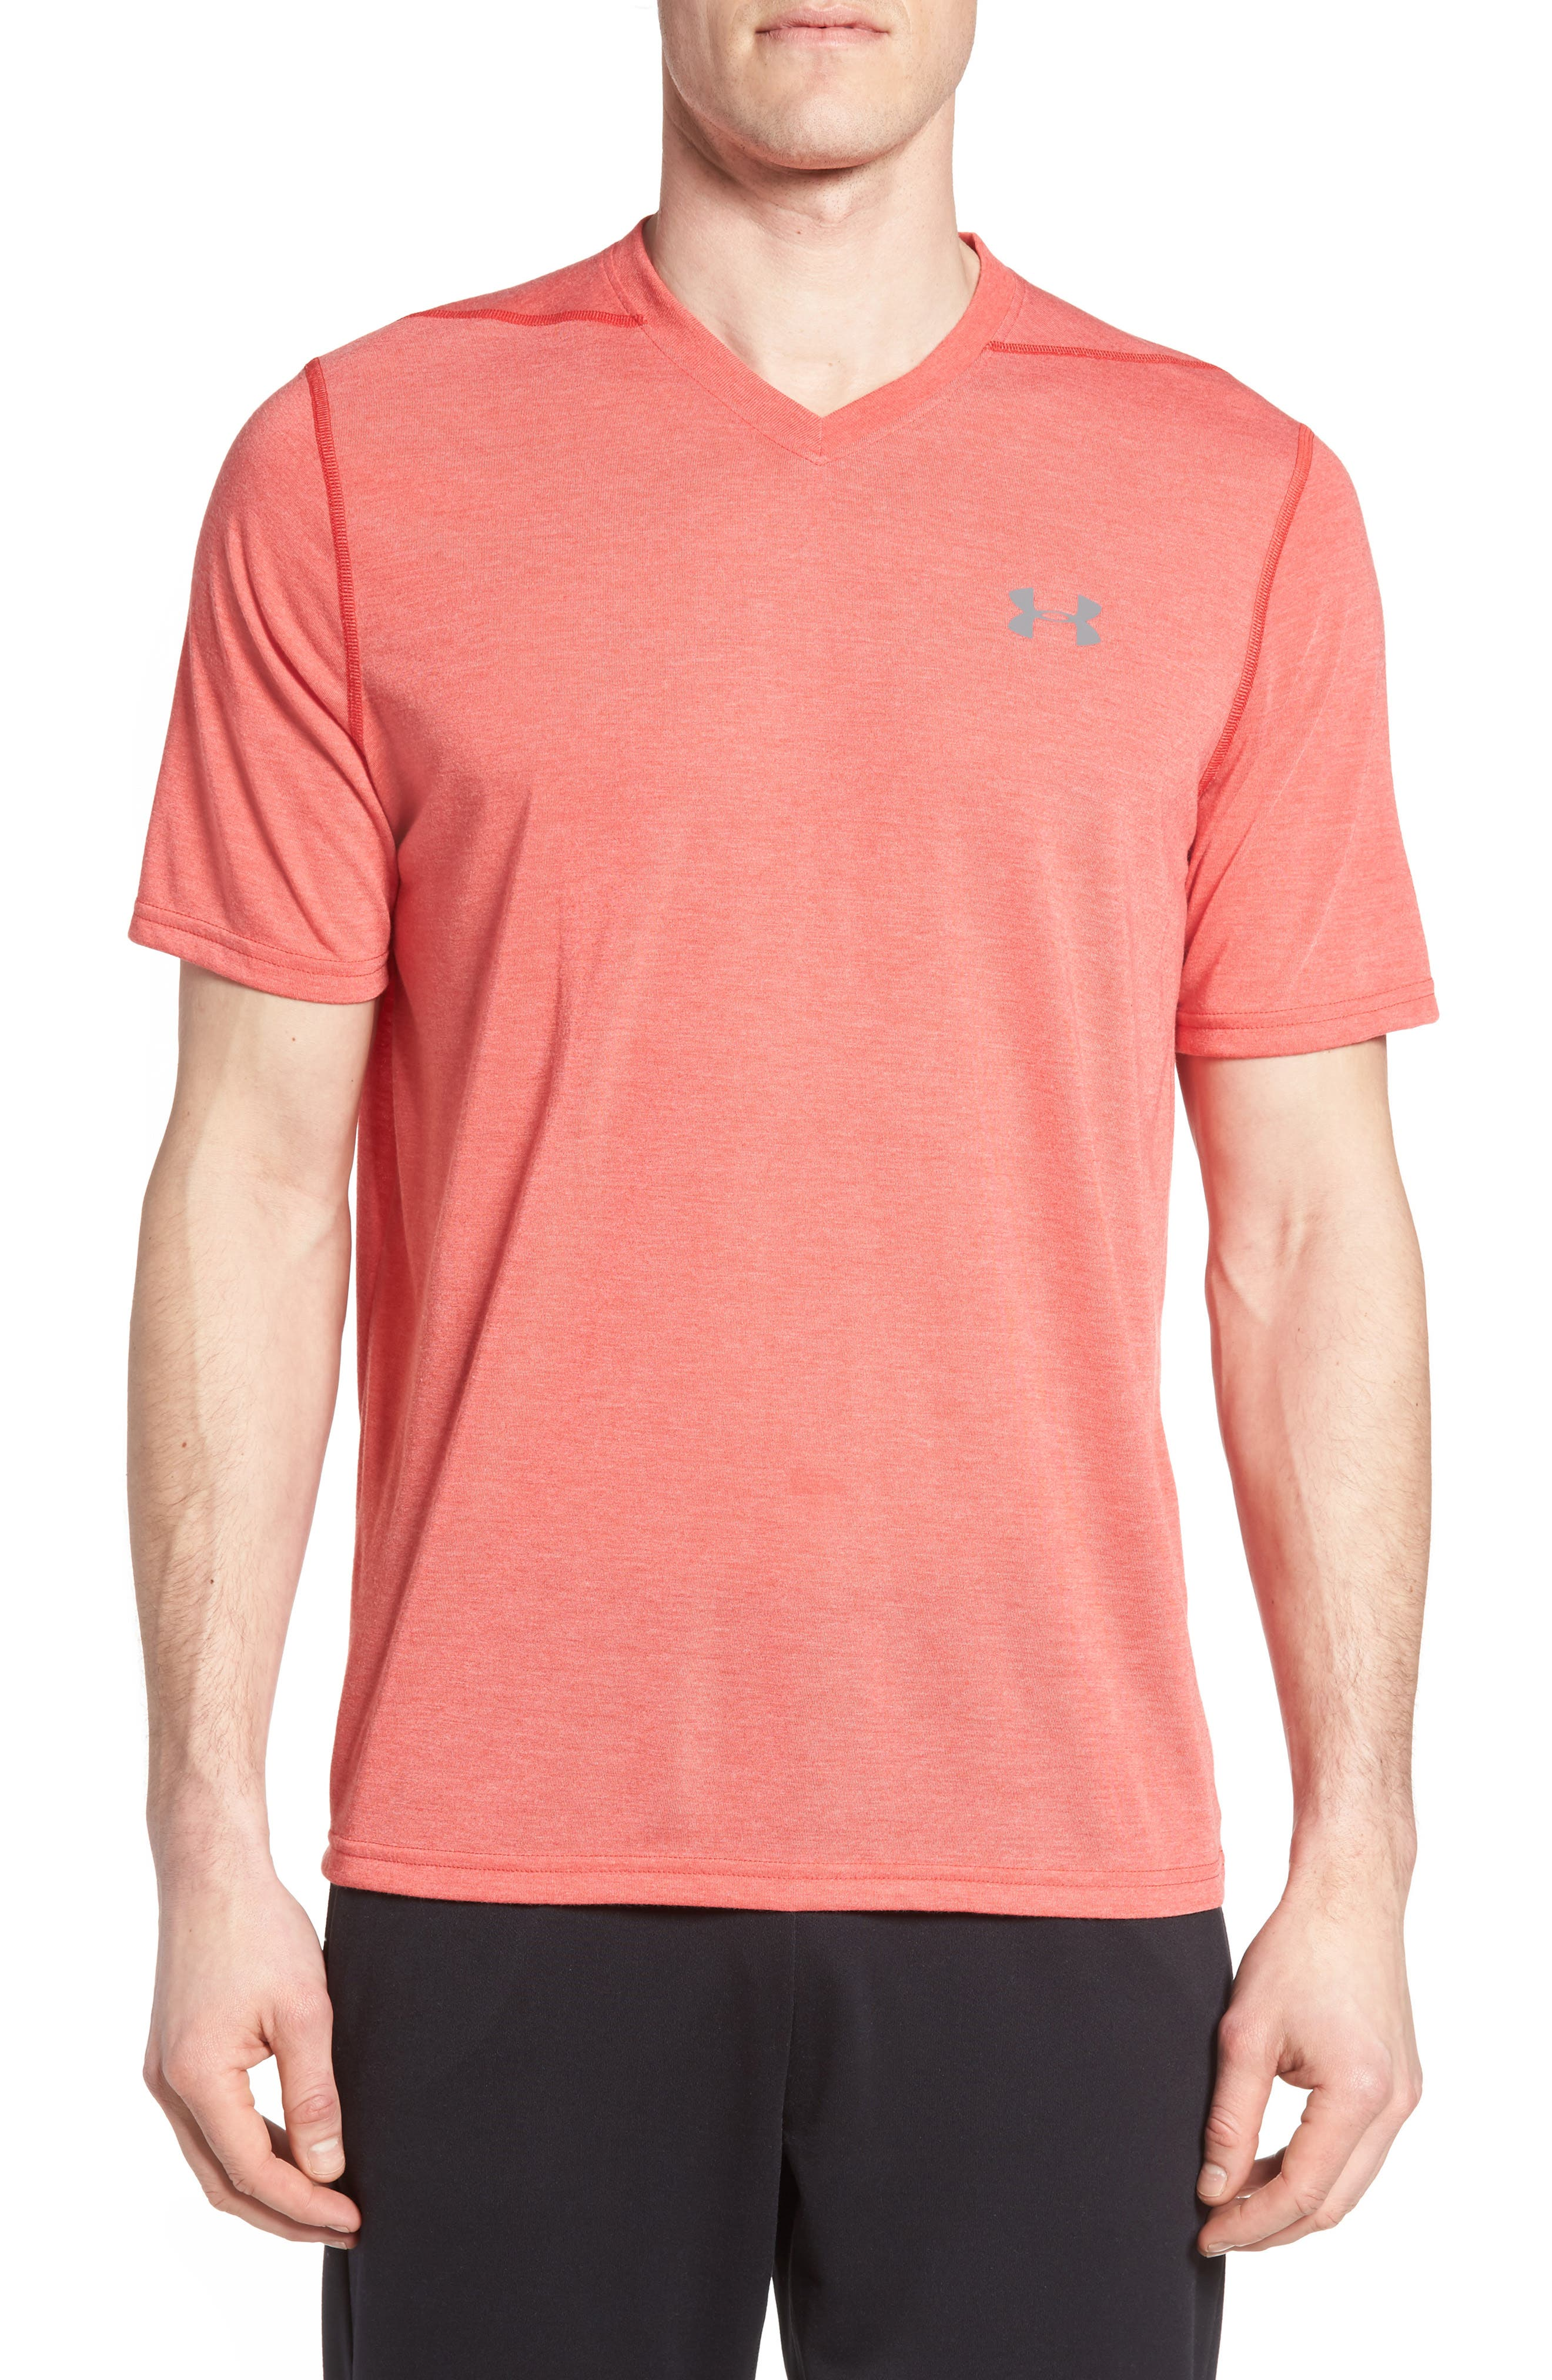 Under Armour Regular Fit Threadborne T-Shirt